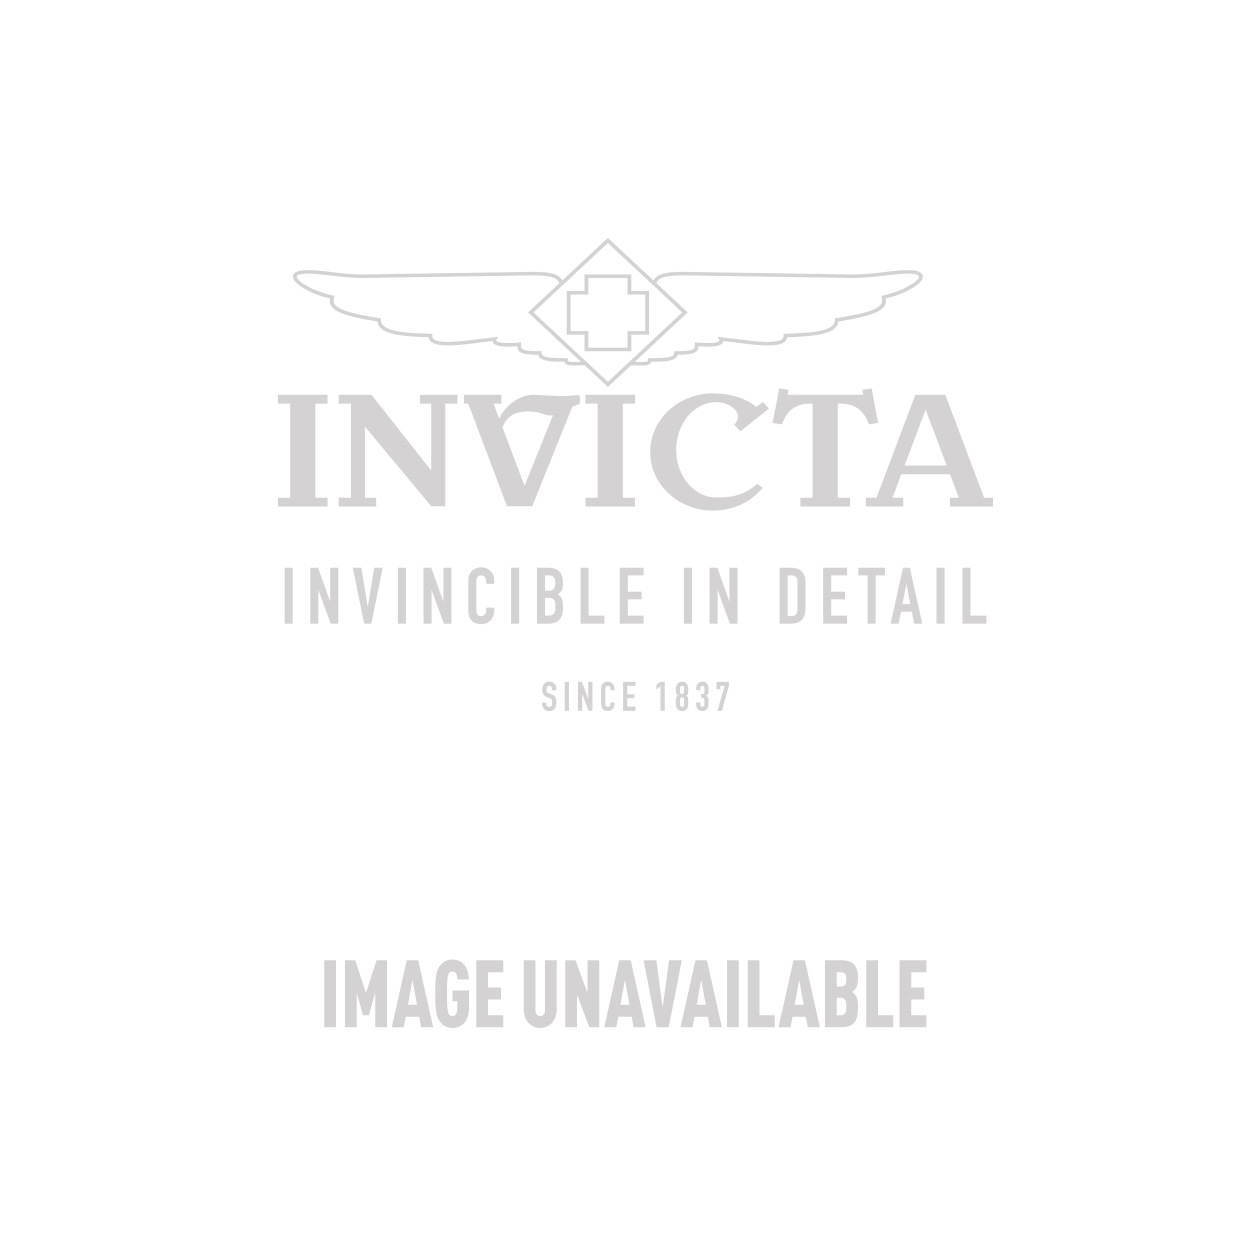 Invicta 19cm Women's Bracelets in Gold, Brown - Model J0103